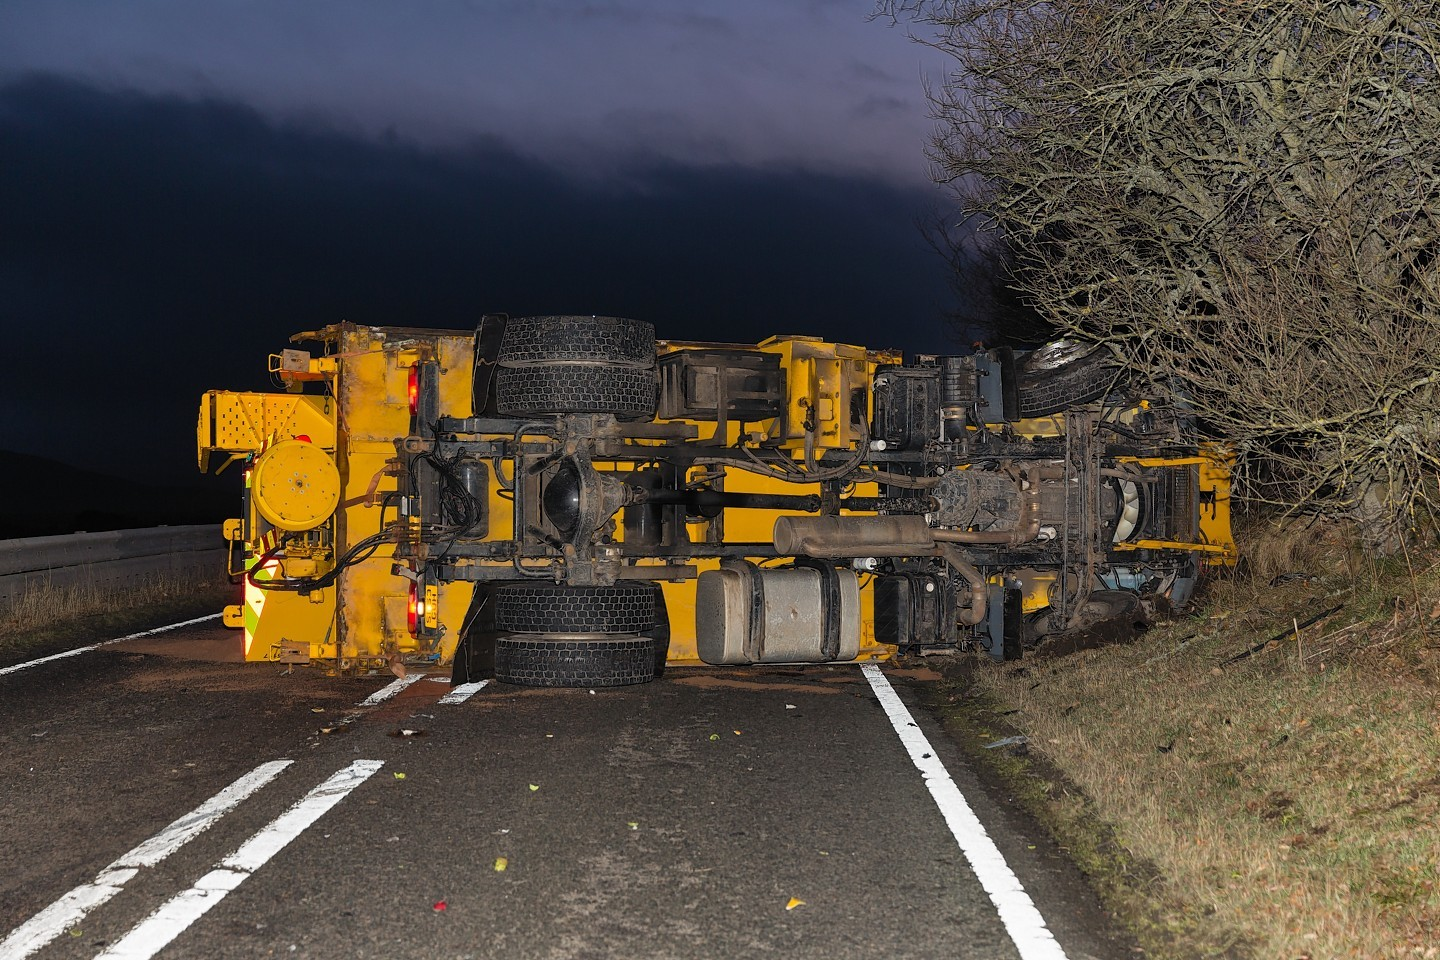 The gritter overturned on the road